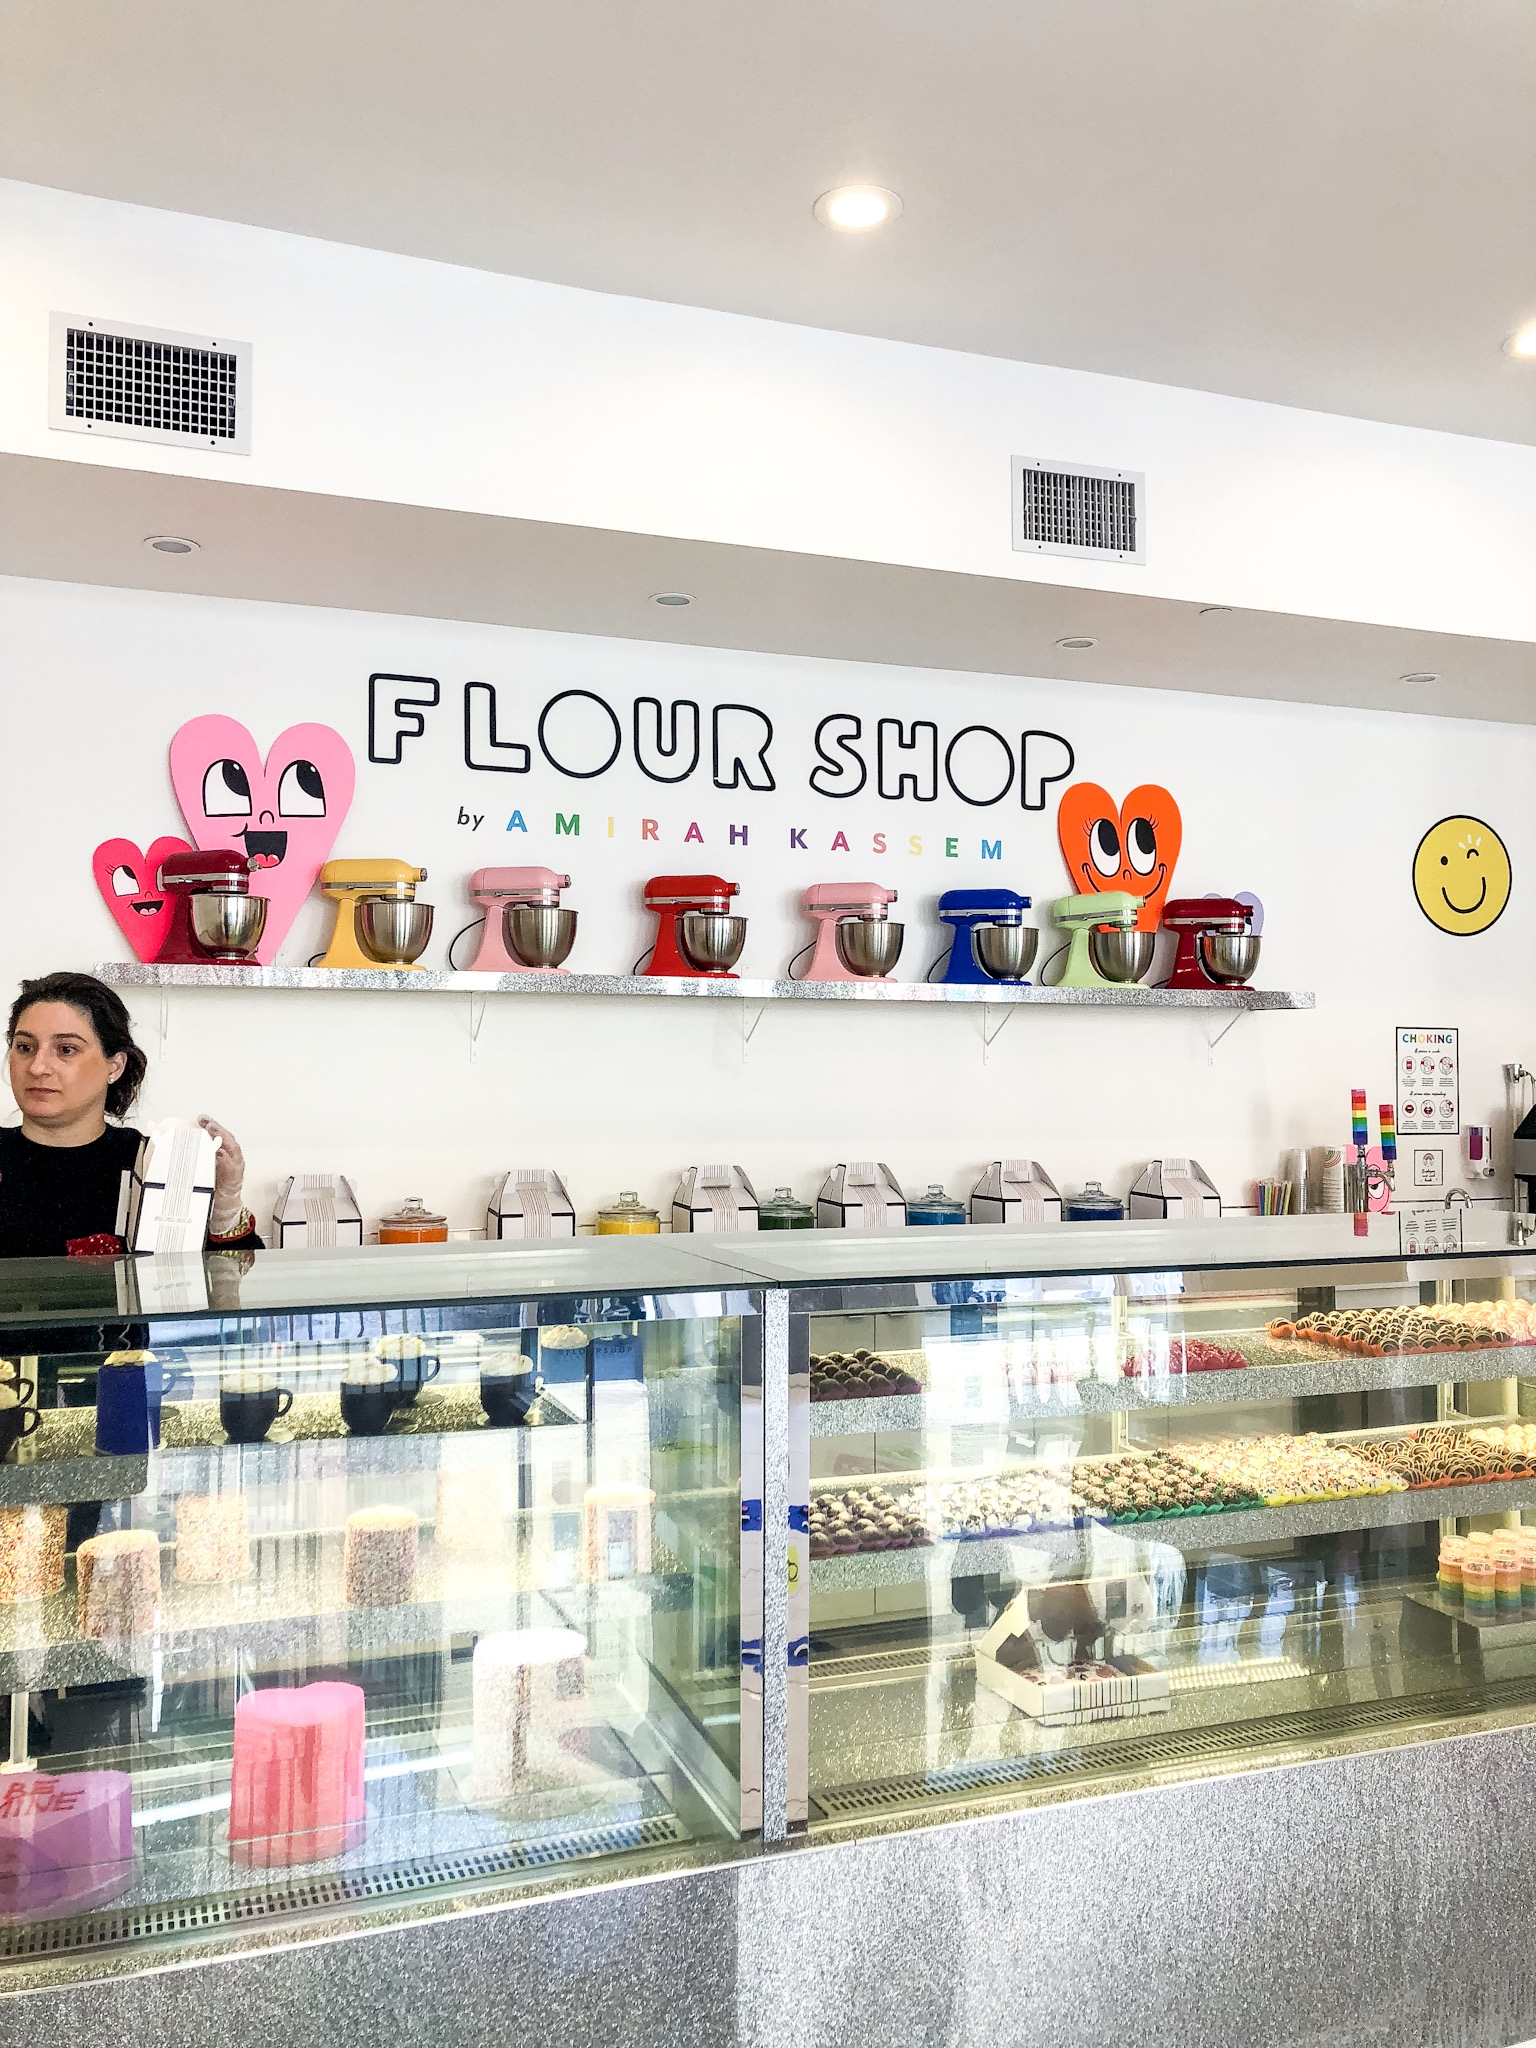 Most Instagrammable Spots in SoHo - flour shop nyc rainbows and hearts cake balls